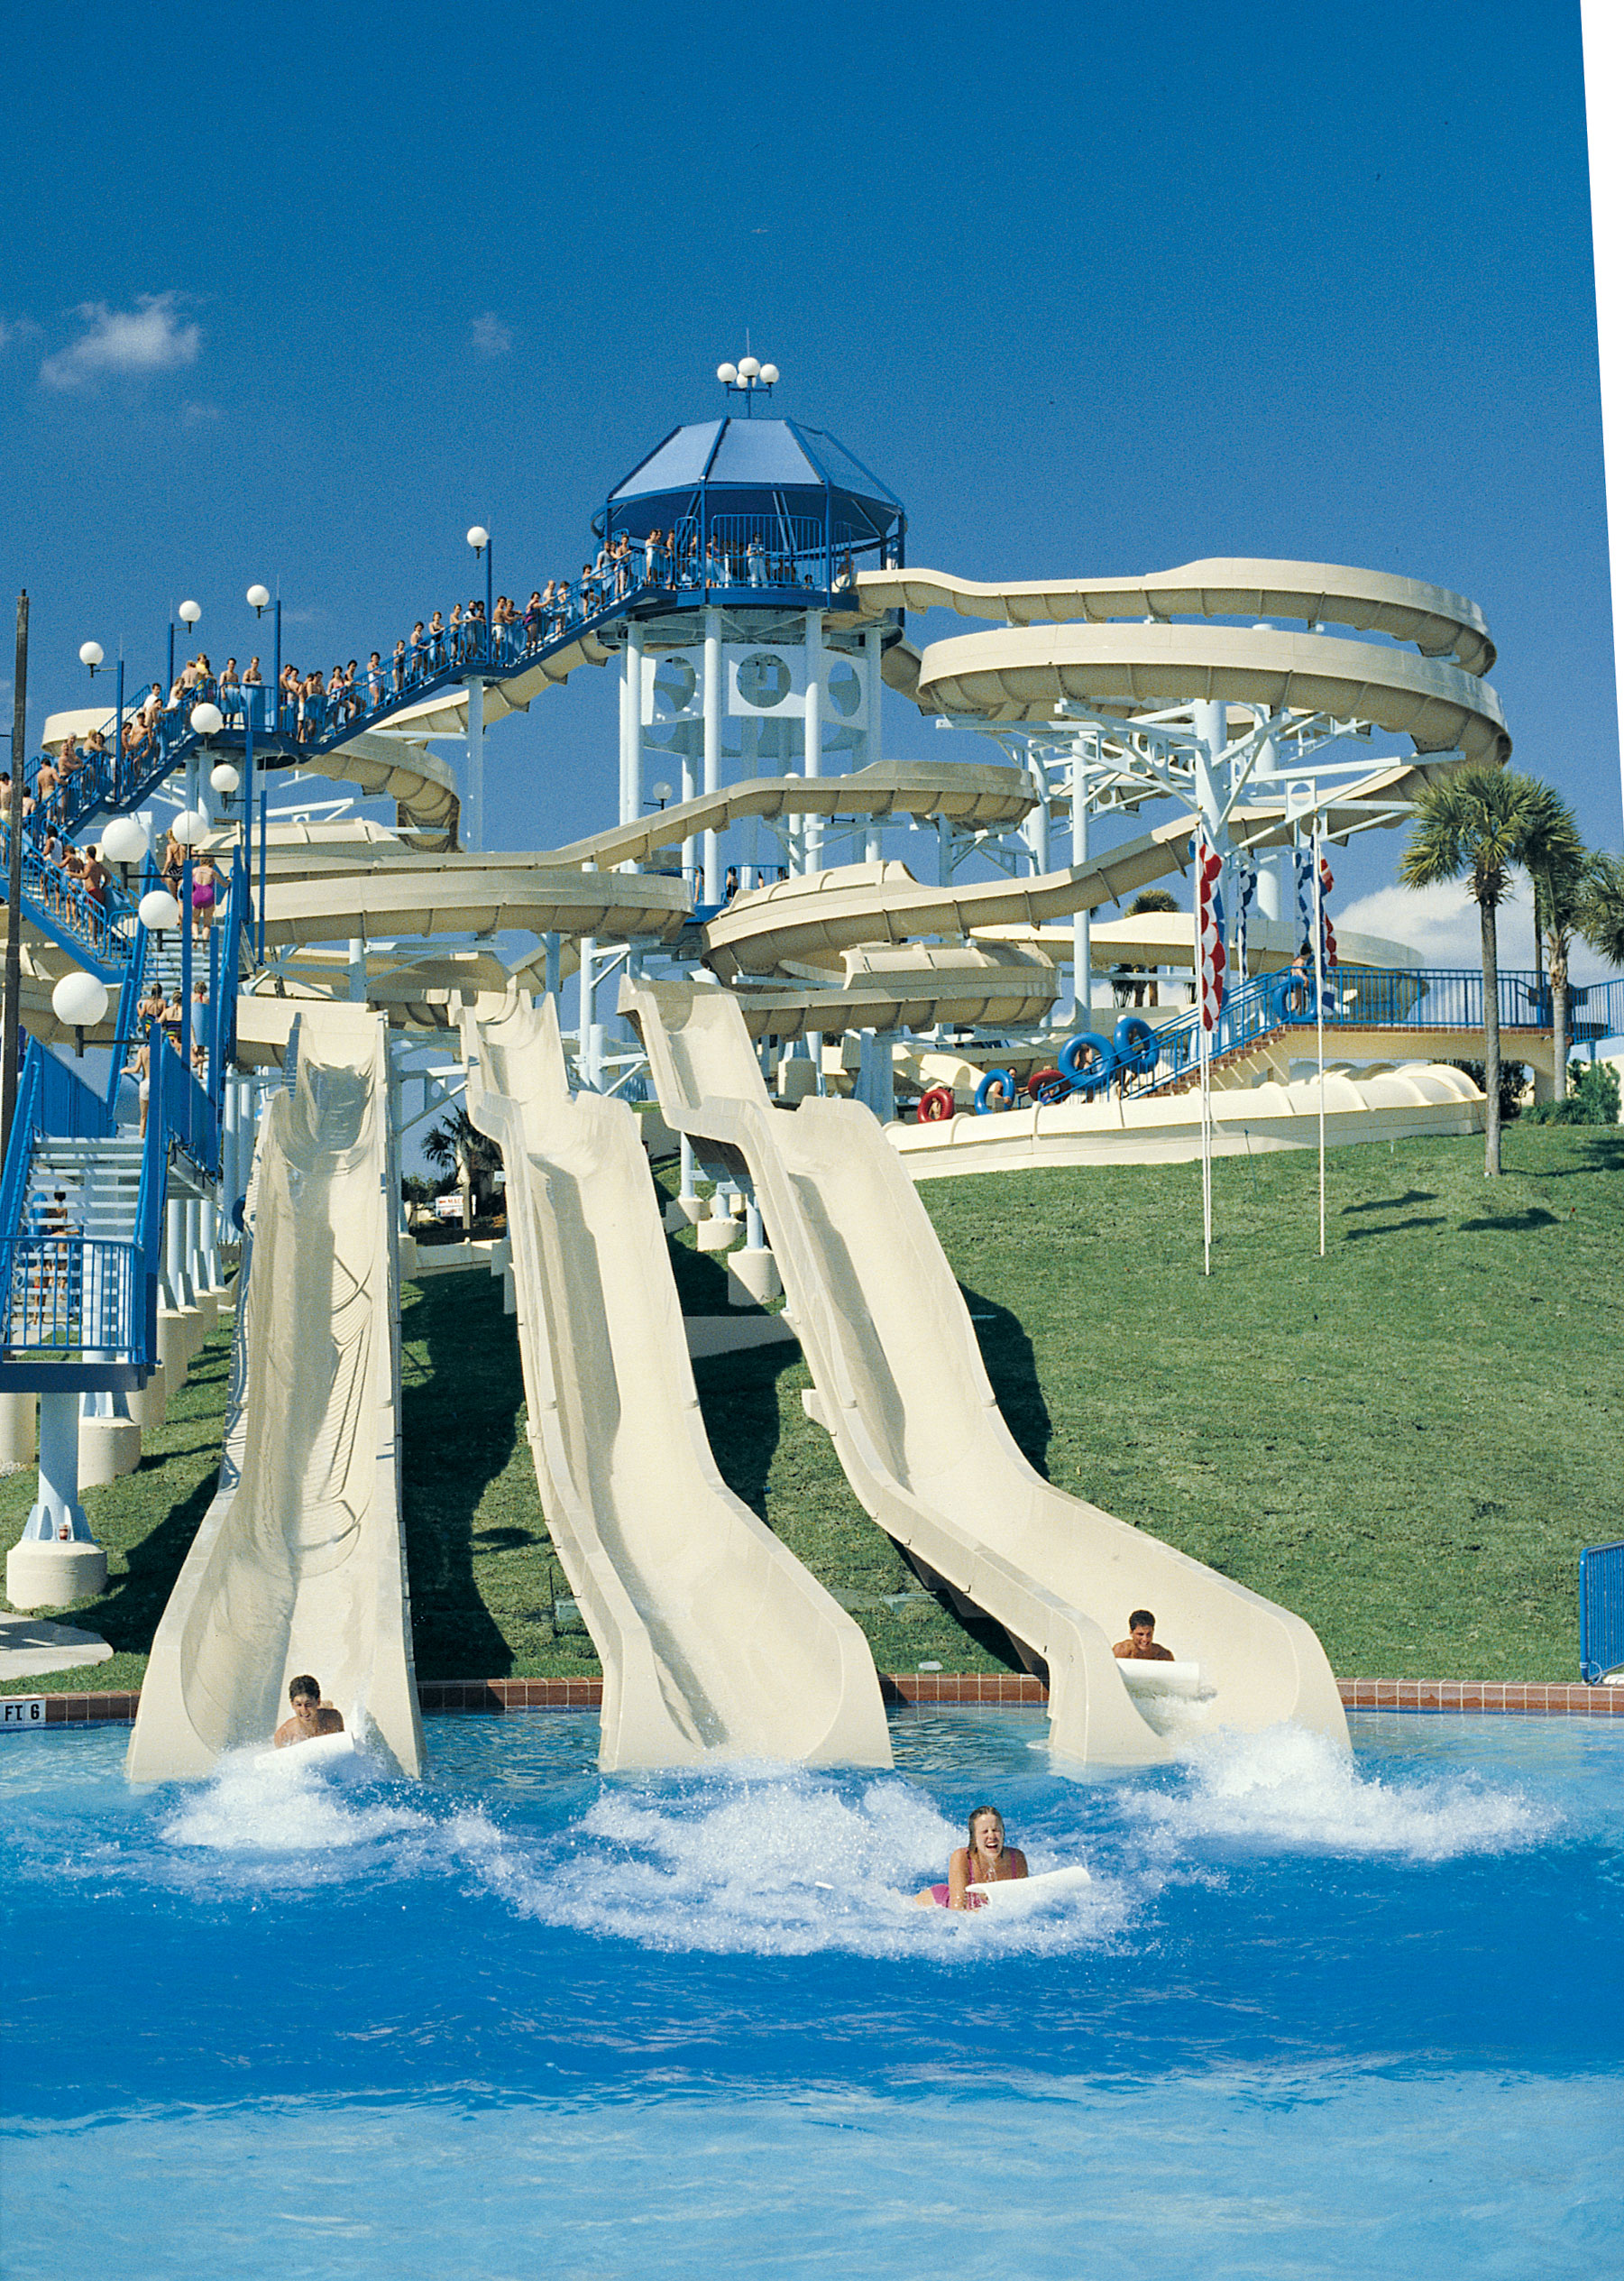 12 of the best water parks in the world | CNN Travel